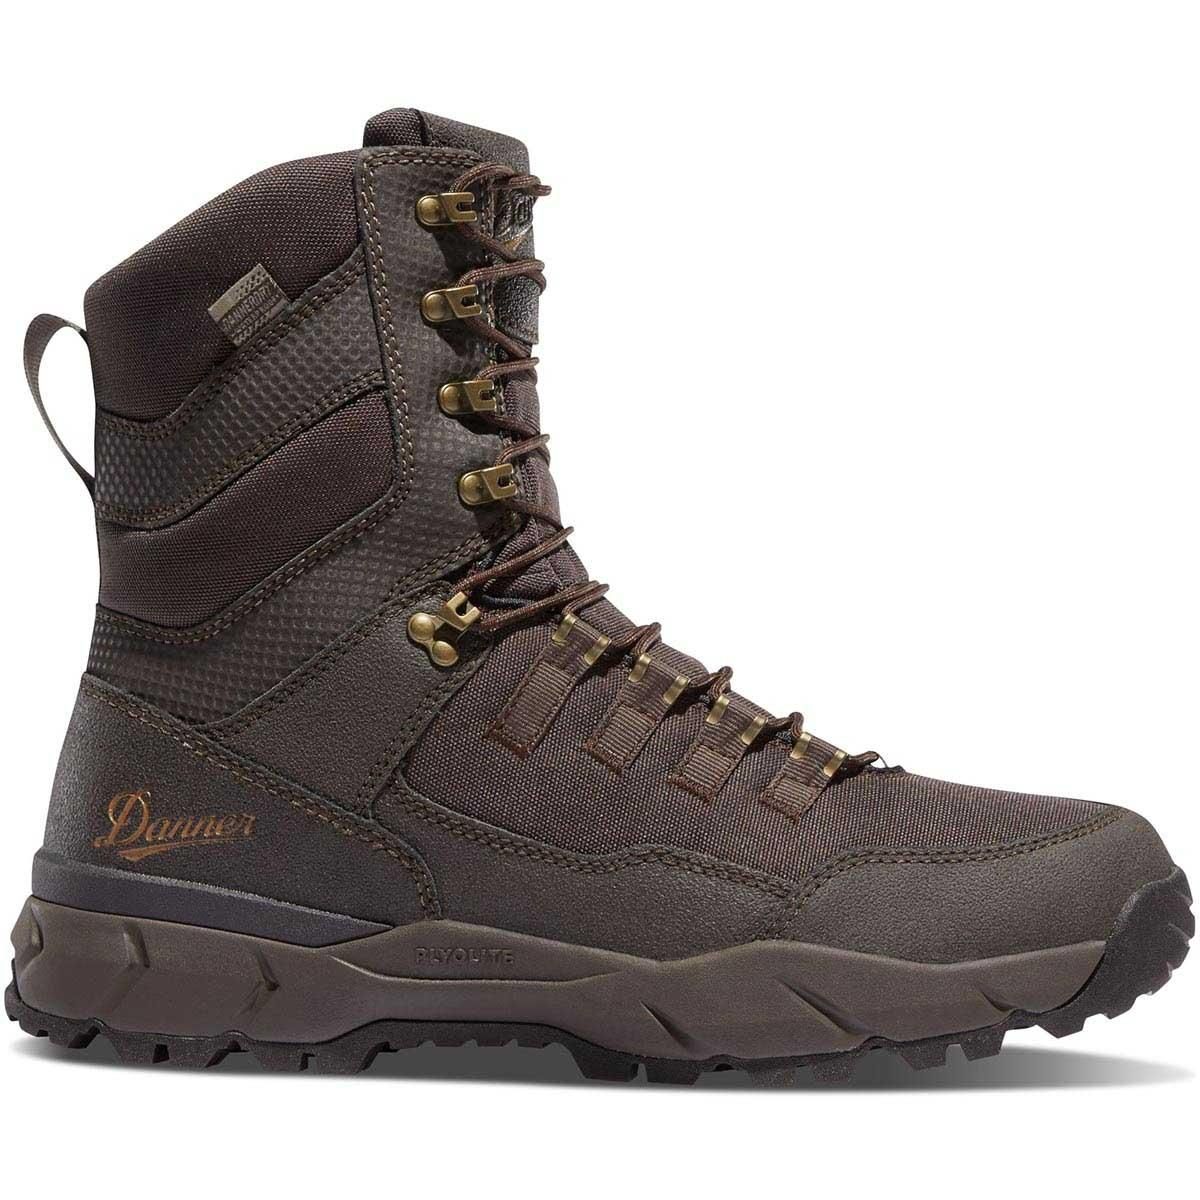 """Danner Vital 8"""" Non-Insulated Hunting Boots_5.jpg"""